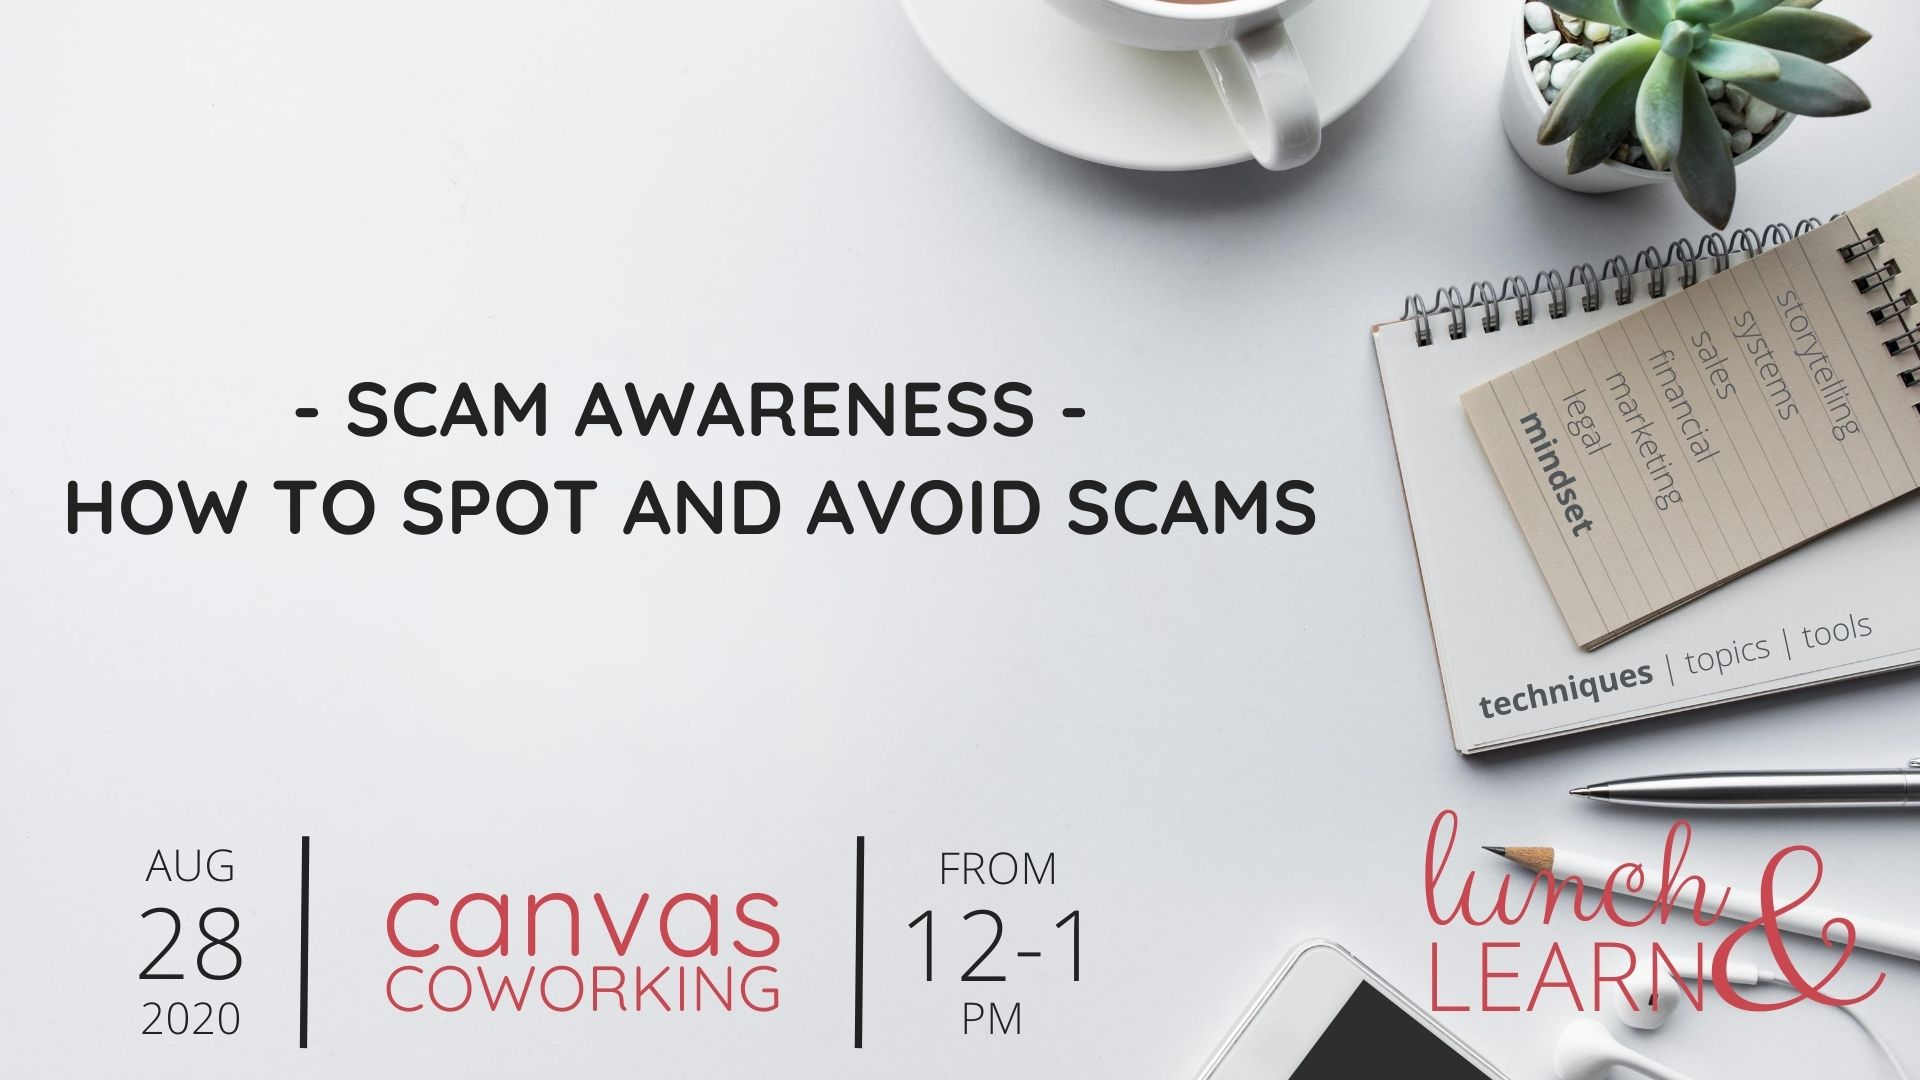 Scams Awareness Lunch & Learn at Canvas Coworking on Friday 28 August 2020